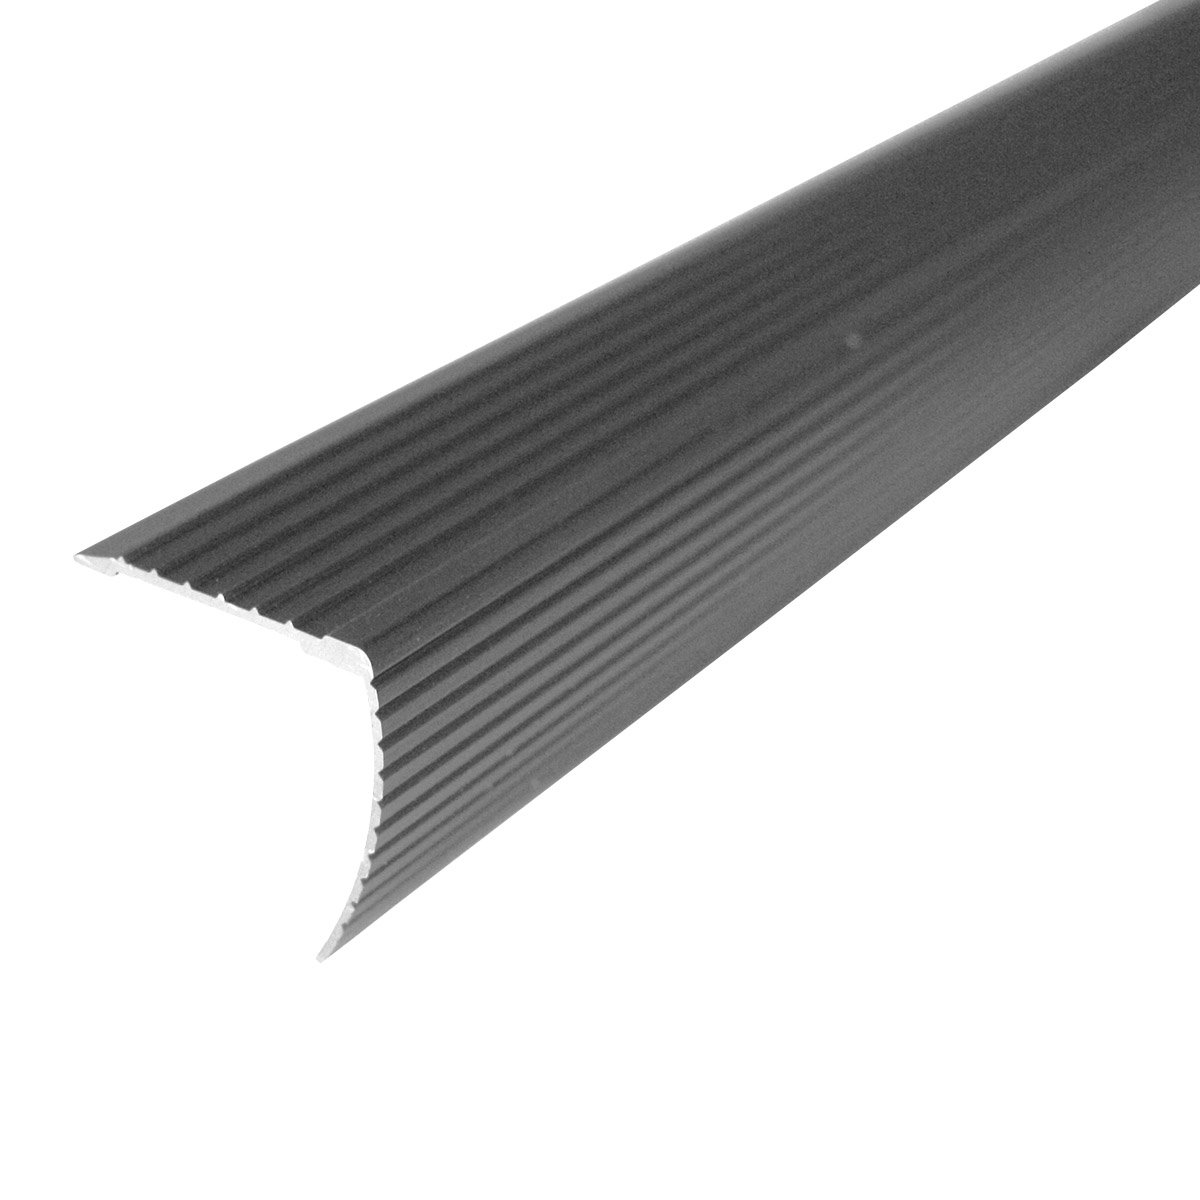 """M-D Building Products 43310 M-D Fluted Stair Edging Transition Strip, 36 in L, Aluminum, Prefinished, Satin Nickel, quot 1""""x1"""""""